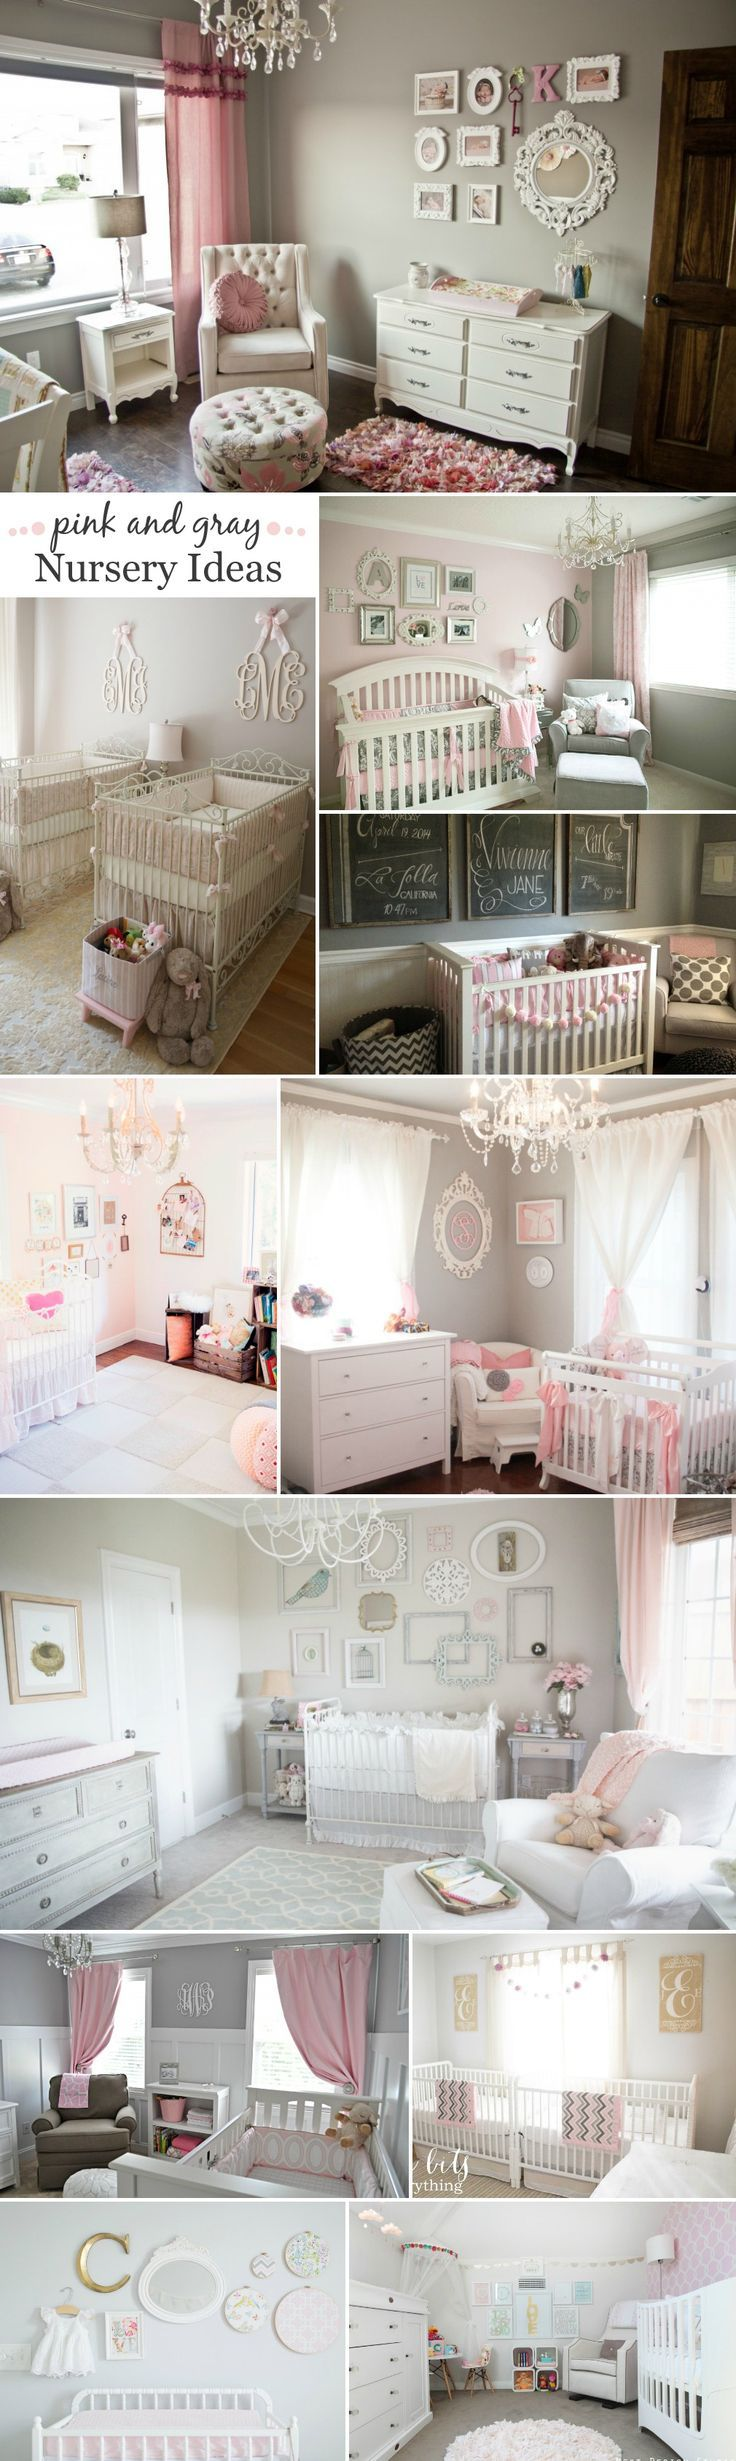 Pink and Gray Nursery Ideas - 11 looks we love! | www.homeology.co.za